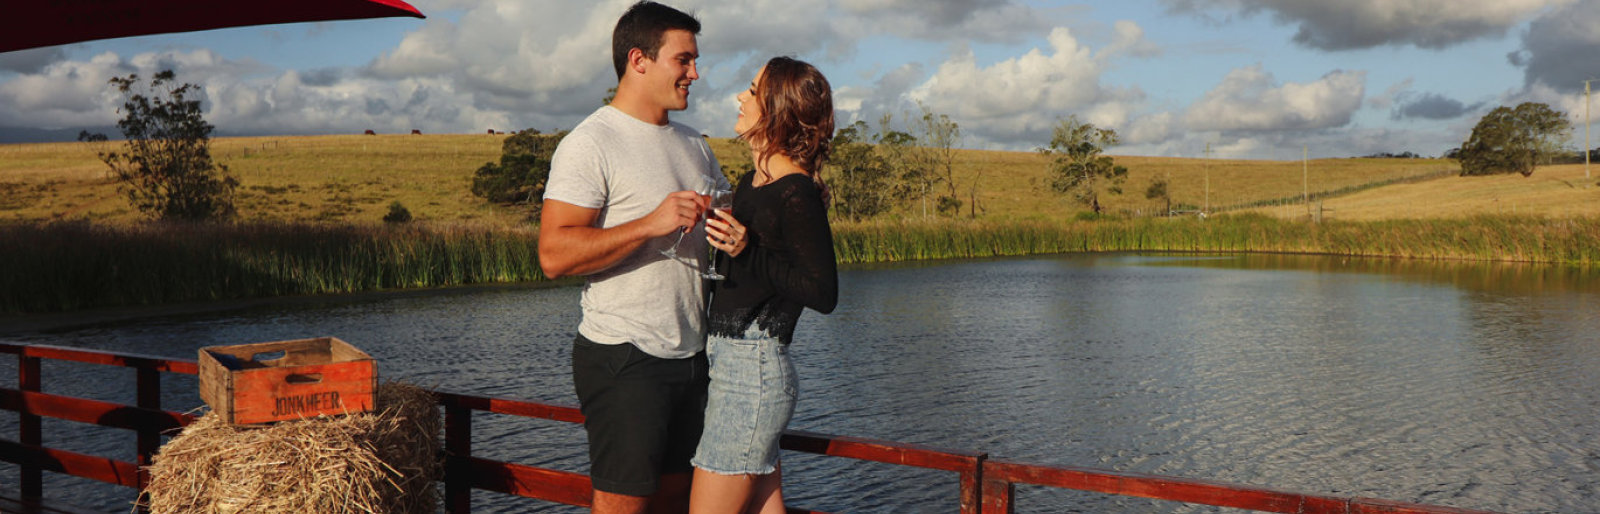 WIN An Unforgettable Proposal Experience